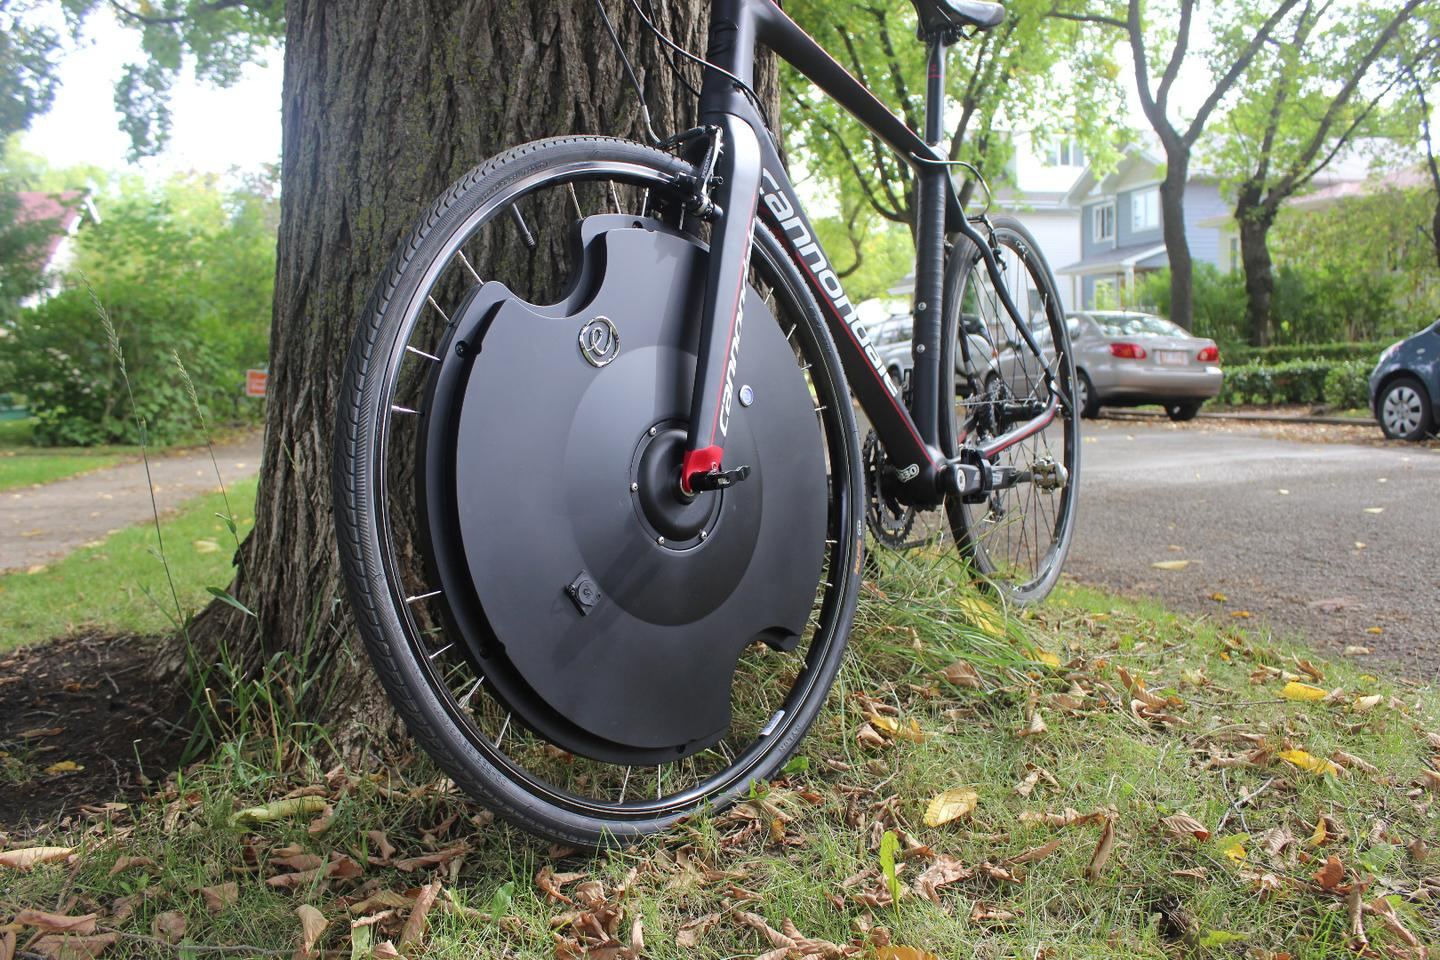 Gizmag tries out the motorized Electron Wheel